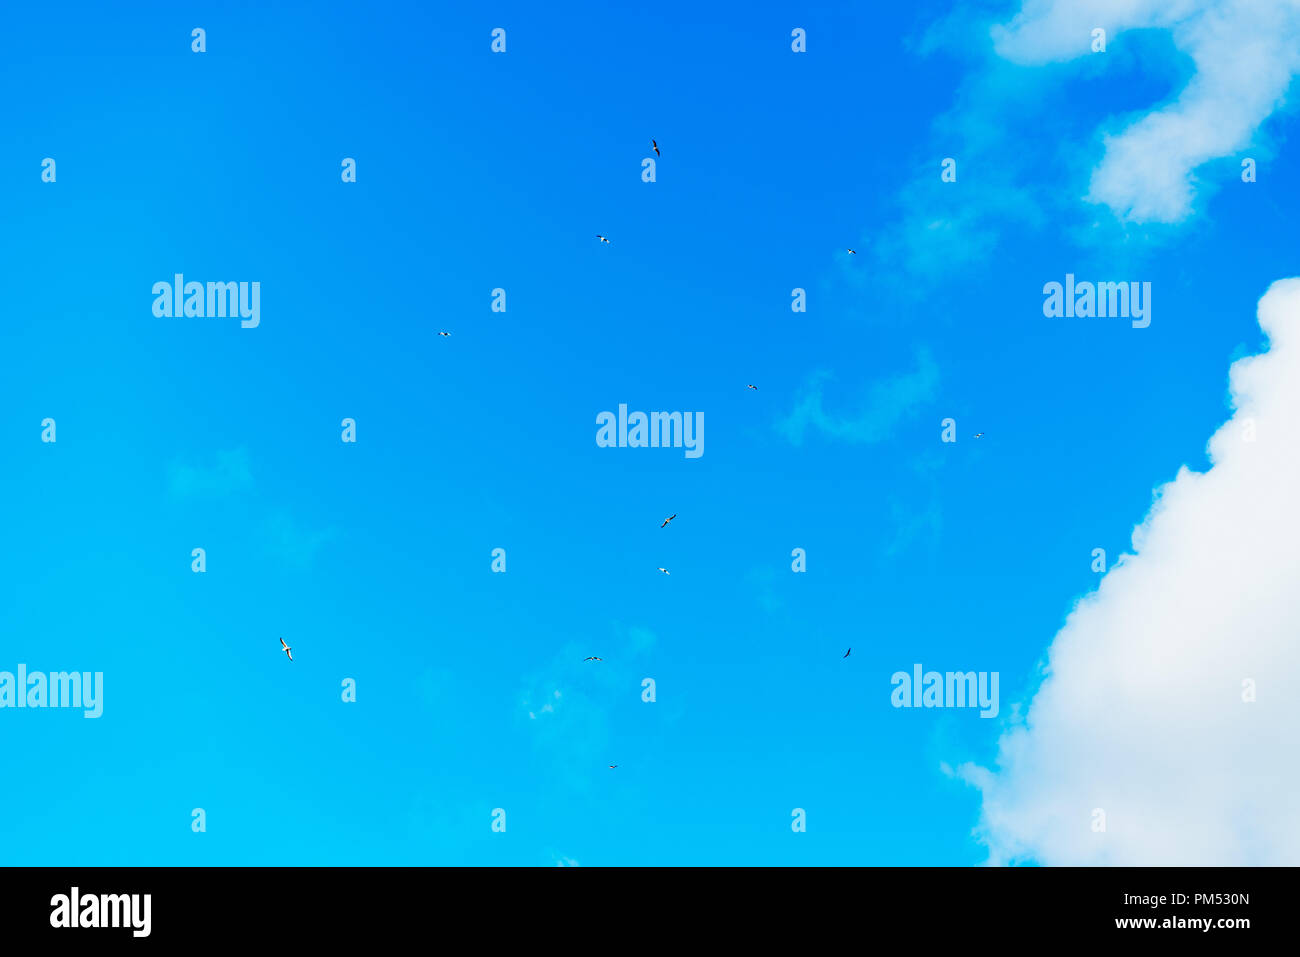 Perfect clear blue sky with white fluffy clouds during daytime - Stock Image